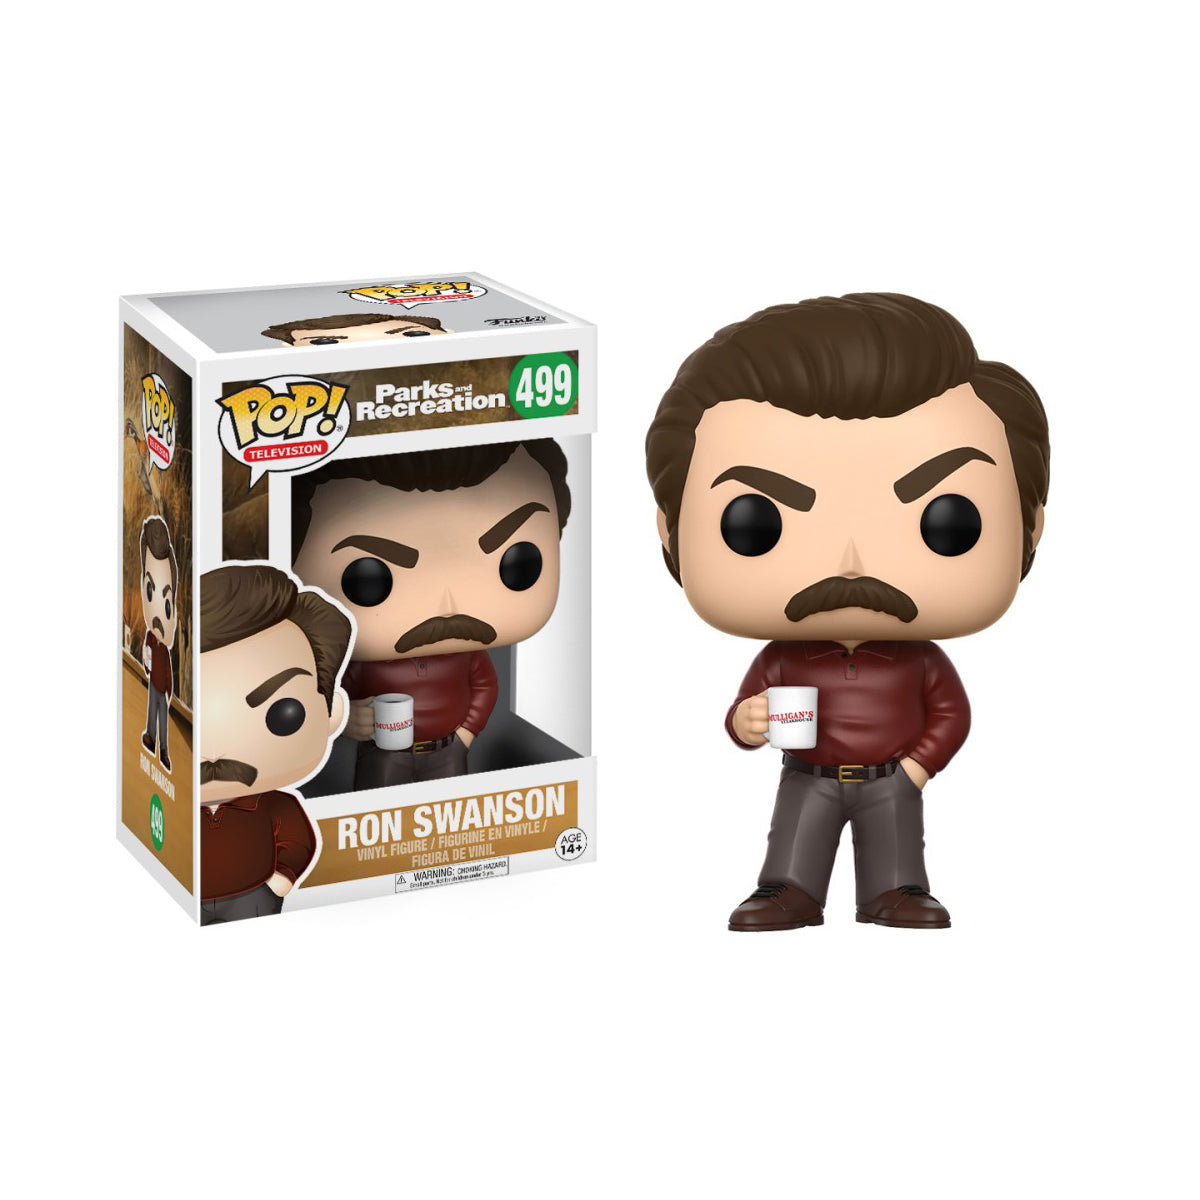 Parks and Recreation Ron Swanson (Not Mint)